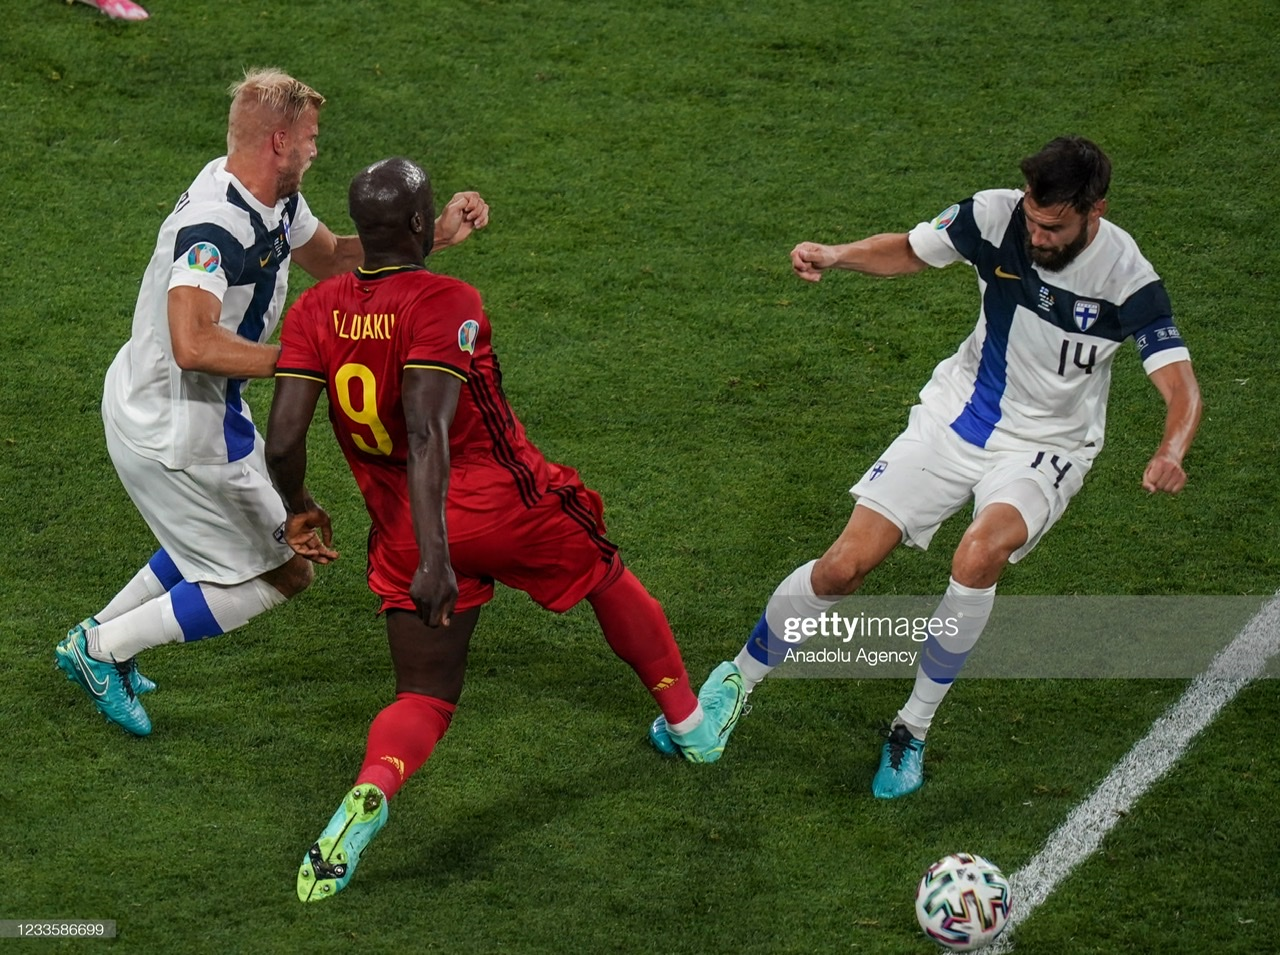 Finland 0-2 Belgium: Red Devils top Group B with a narrow victory over Finland